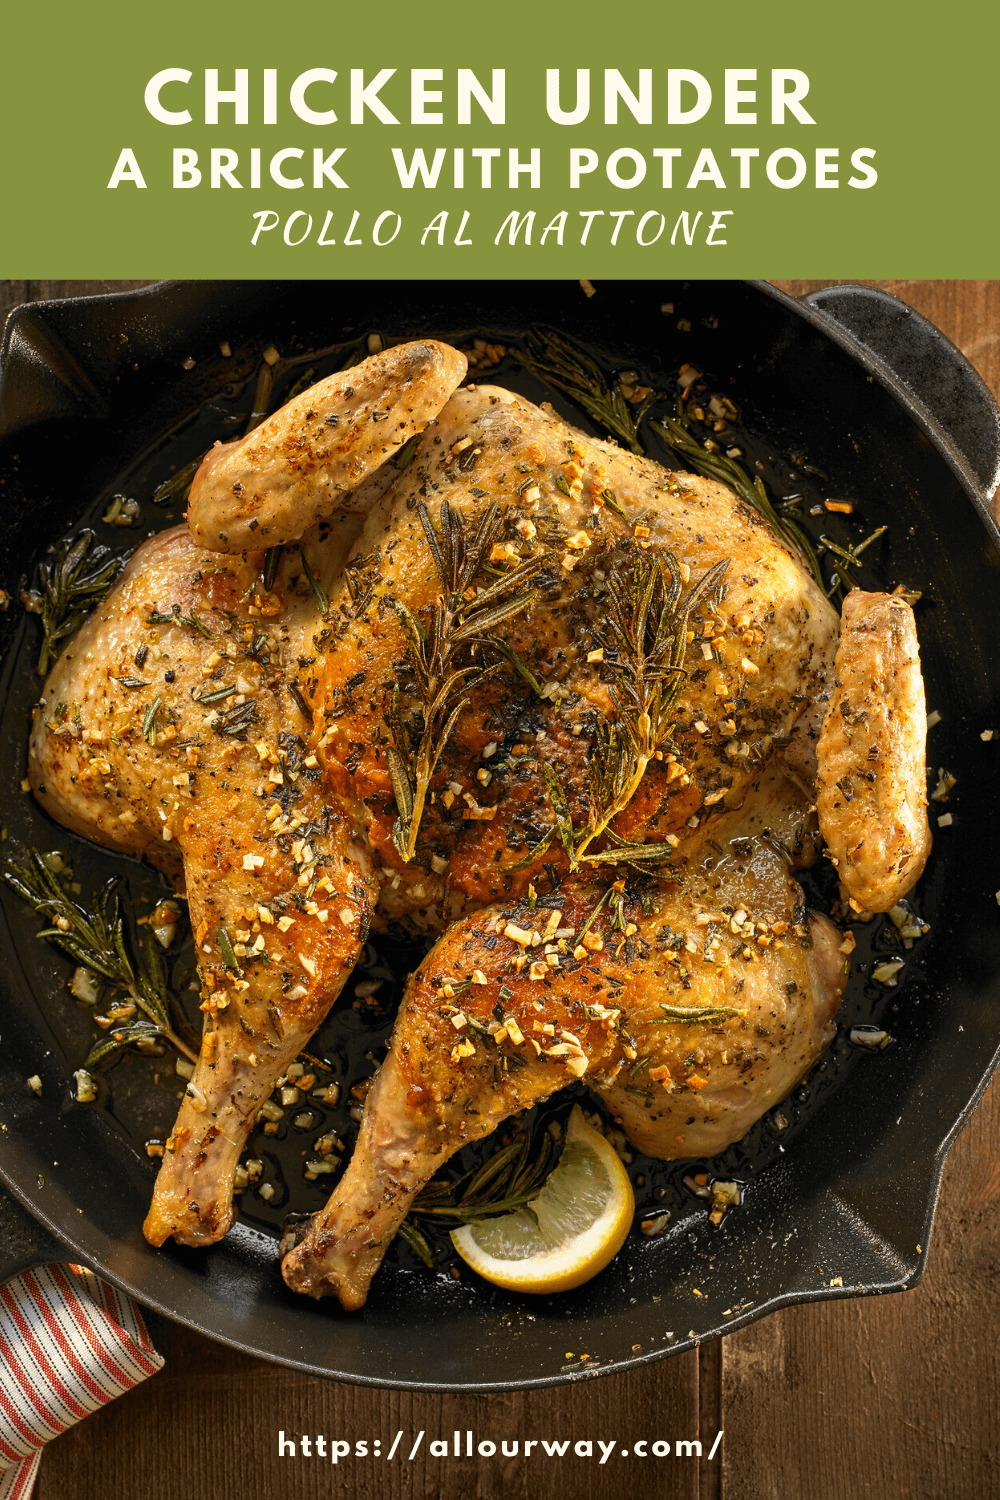 The chicken is butterflied, seasoned with herbs then flattened on a grill with a cast-iron skillet. The In this pollo al mattone the skillet does double duty by roasting the potatoes. This method ensures a crispy skin, moist meat that is evenly grilled. The potatoes finishes up when the chicken under the brick is done.